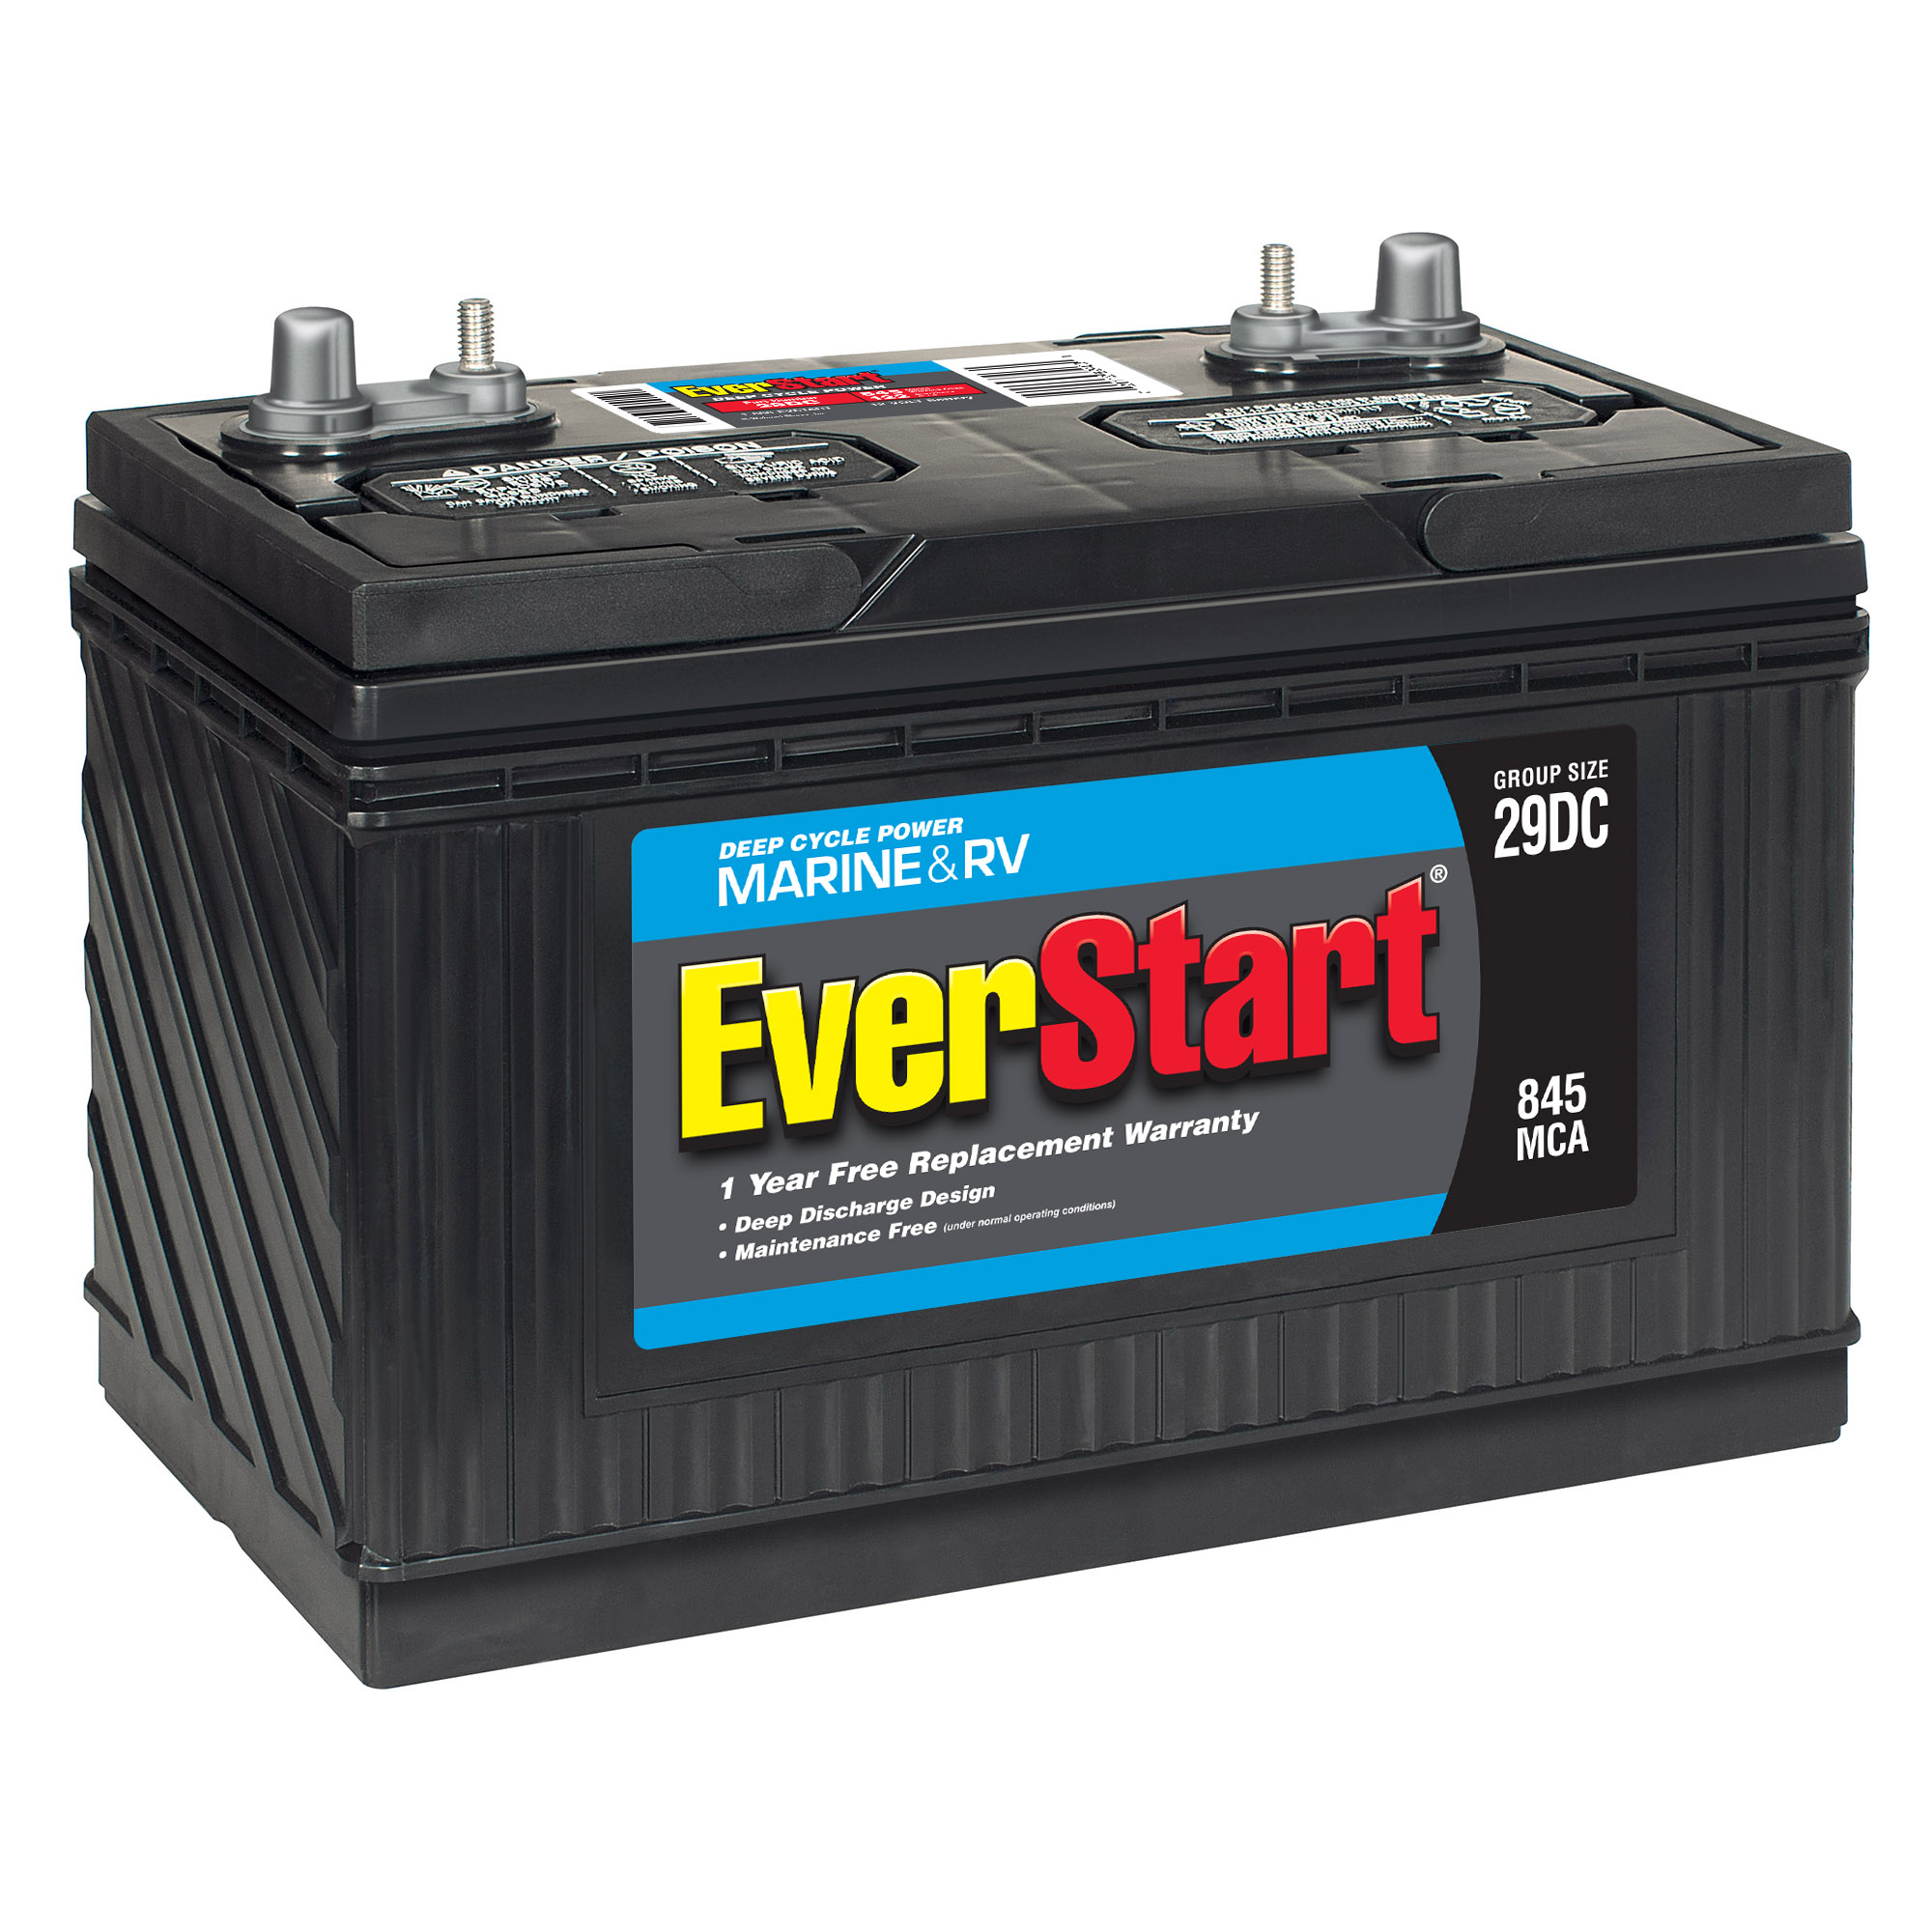 Brand Everstart Number 29dc Price 86 83